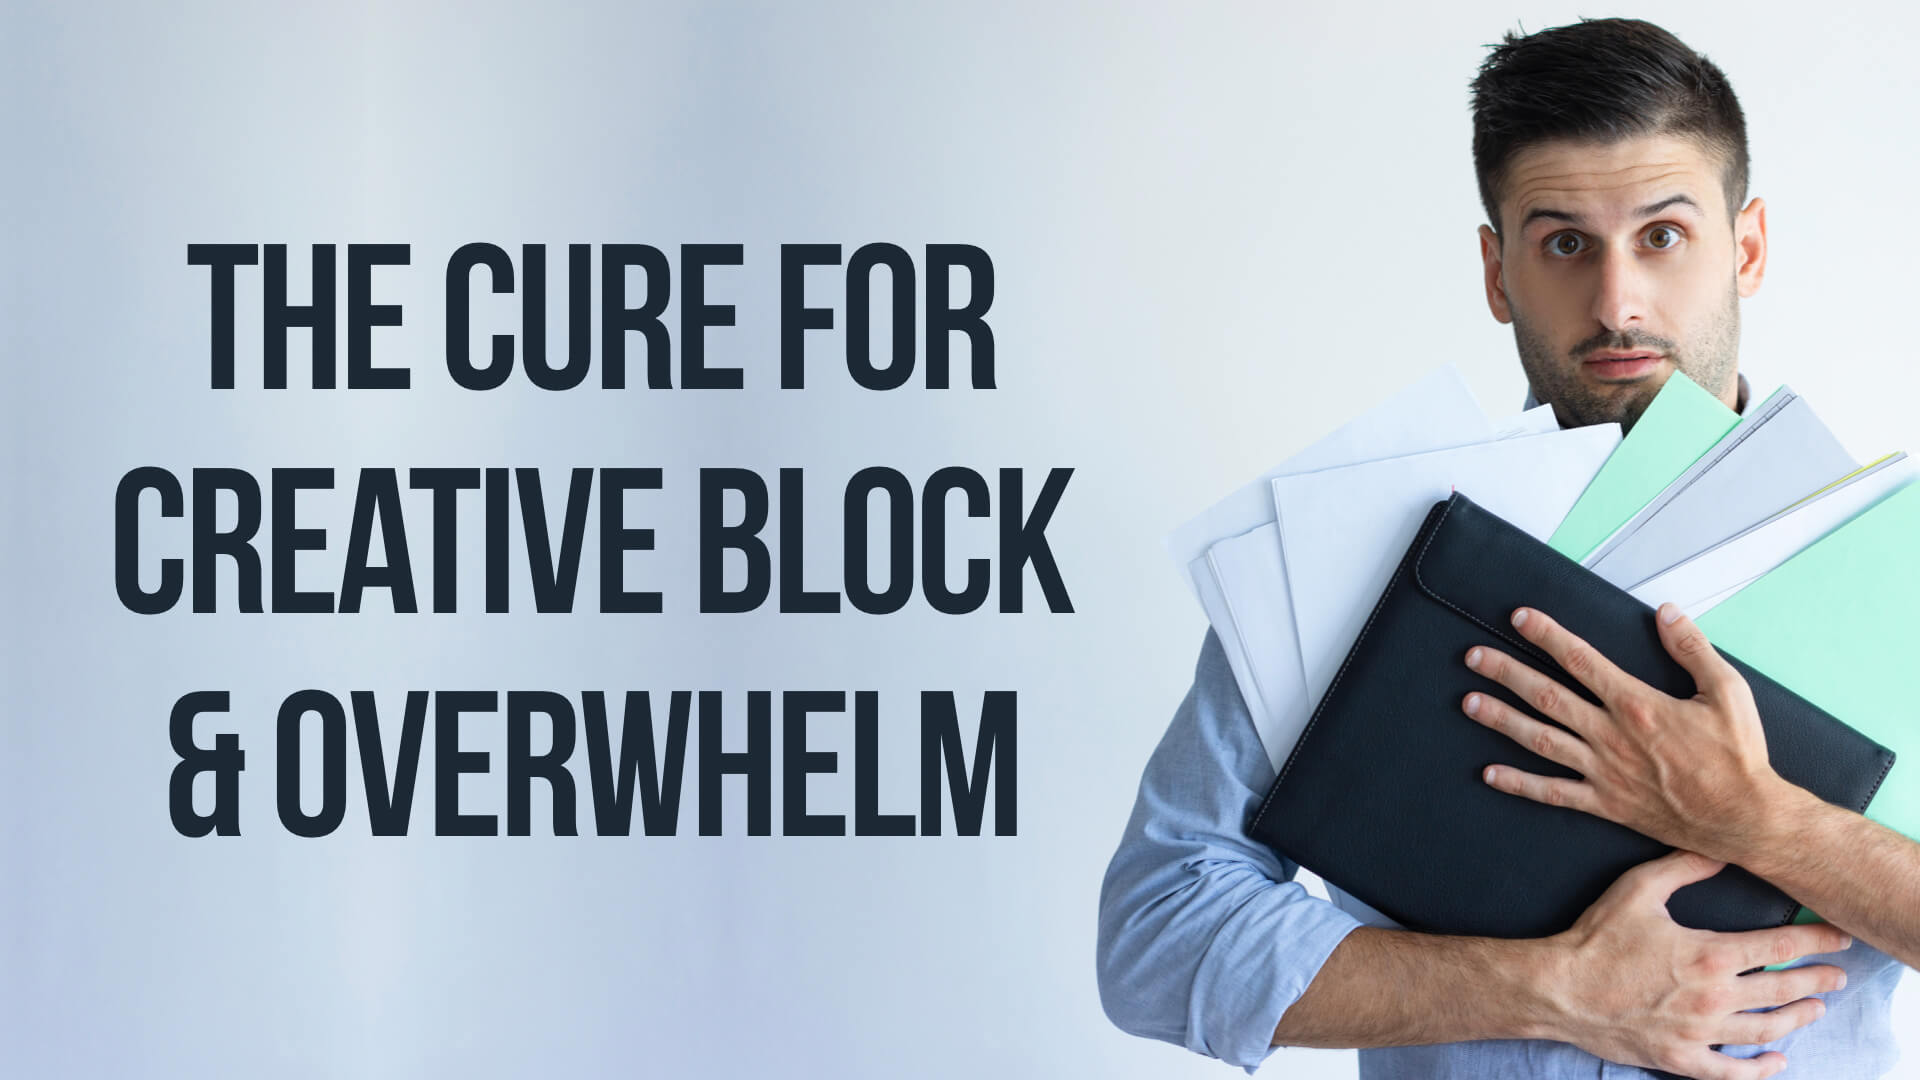 Man suffering from creative block holding a stack of papers